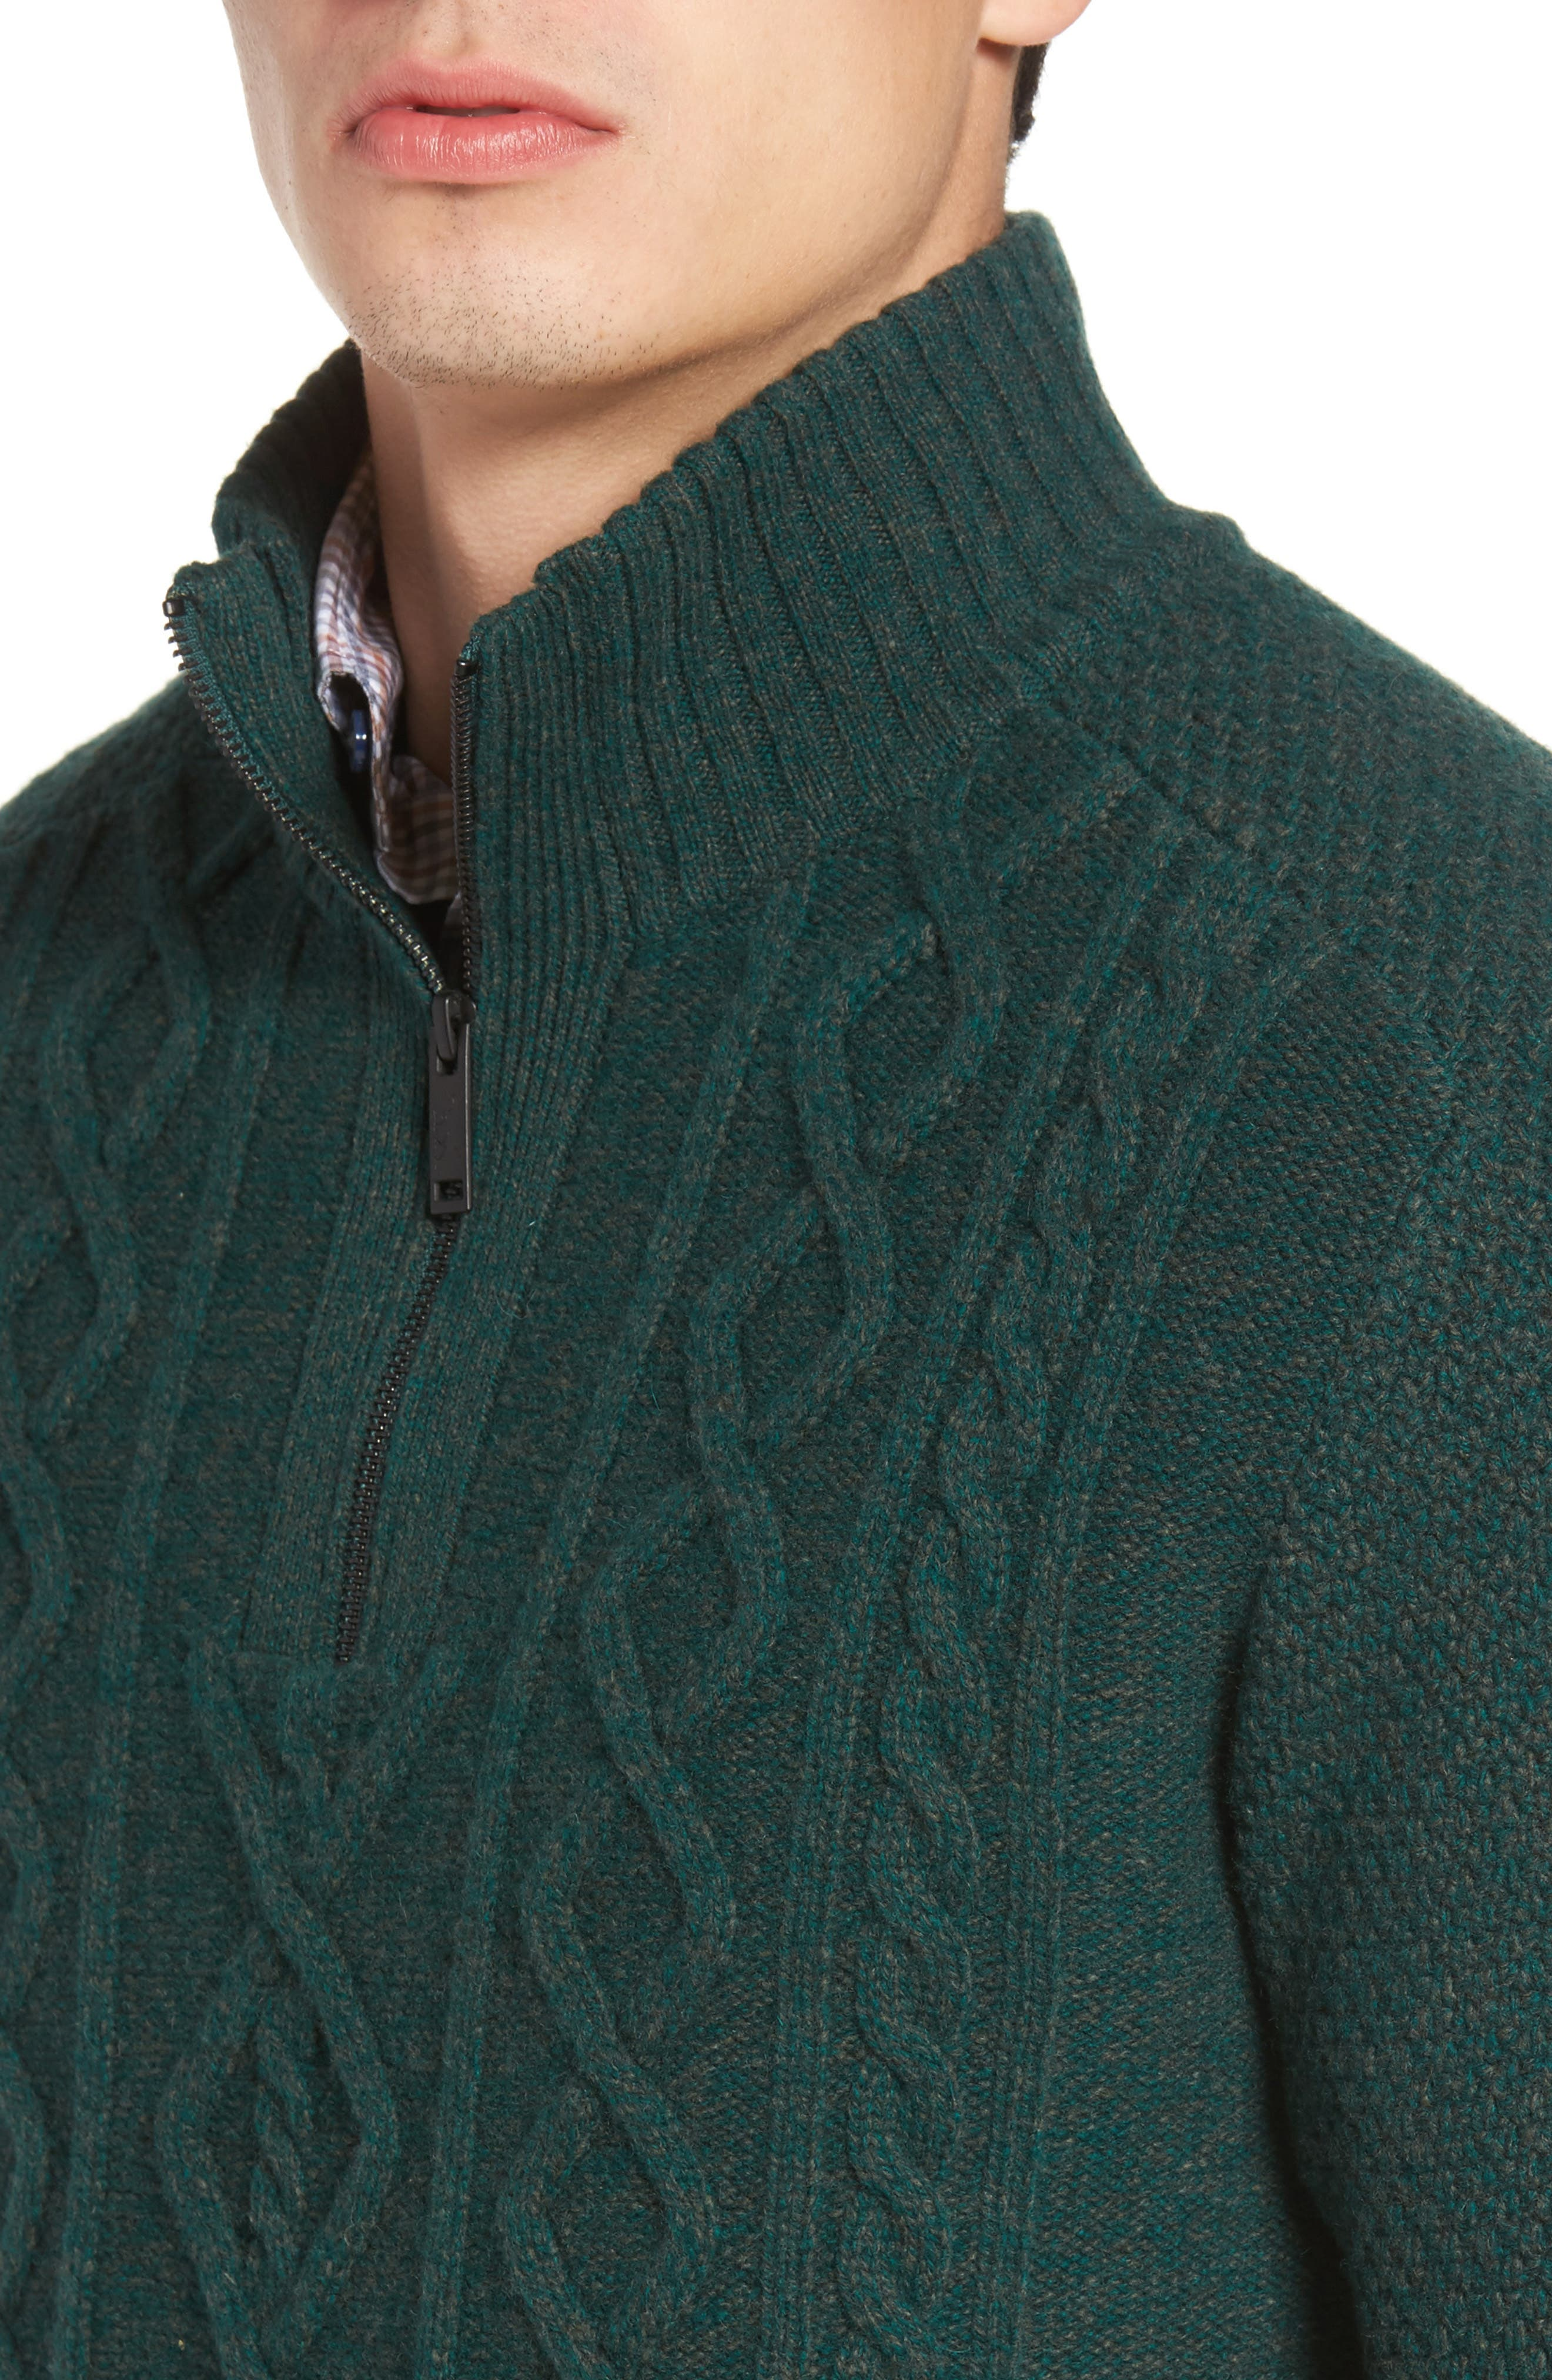 Cape Scoresby Wool Sweater,                             Alternate thumbnail 11, color,